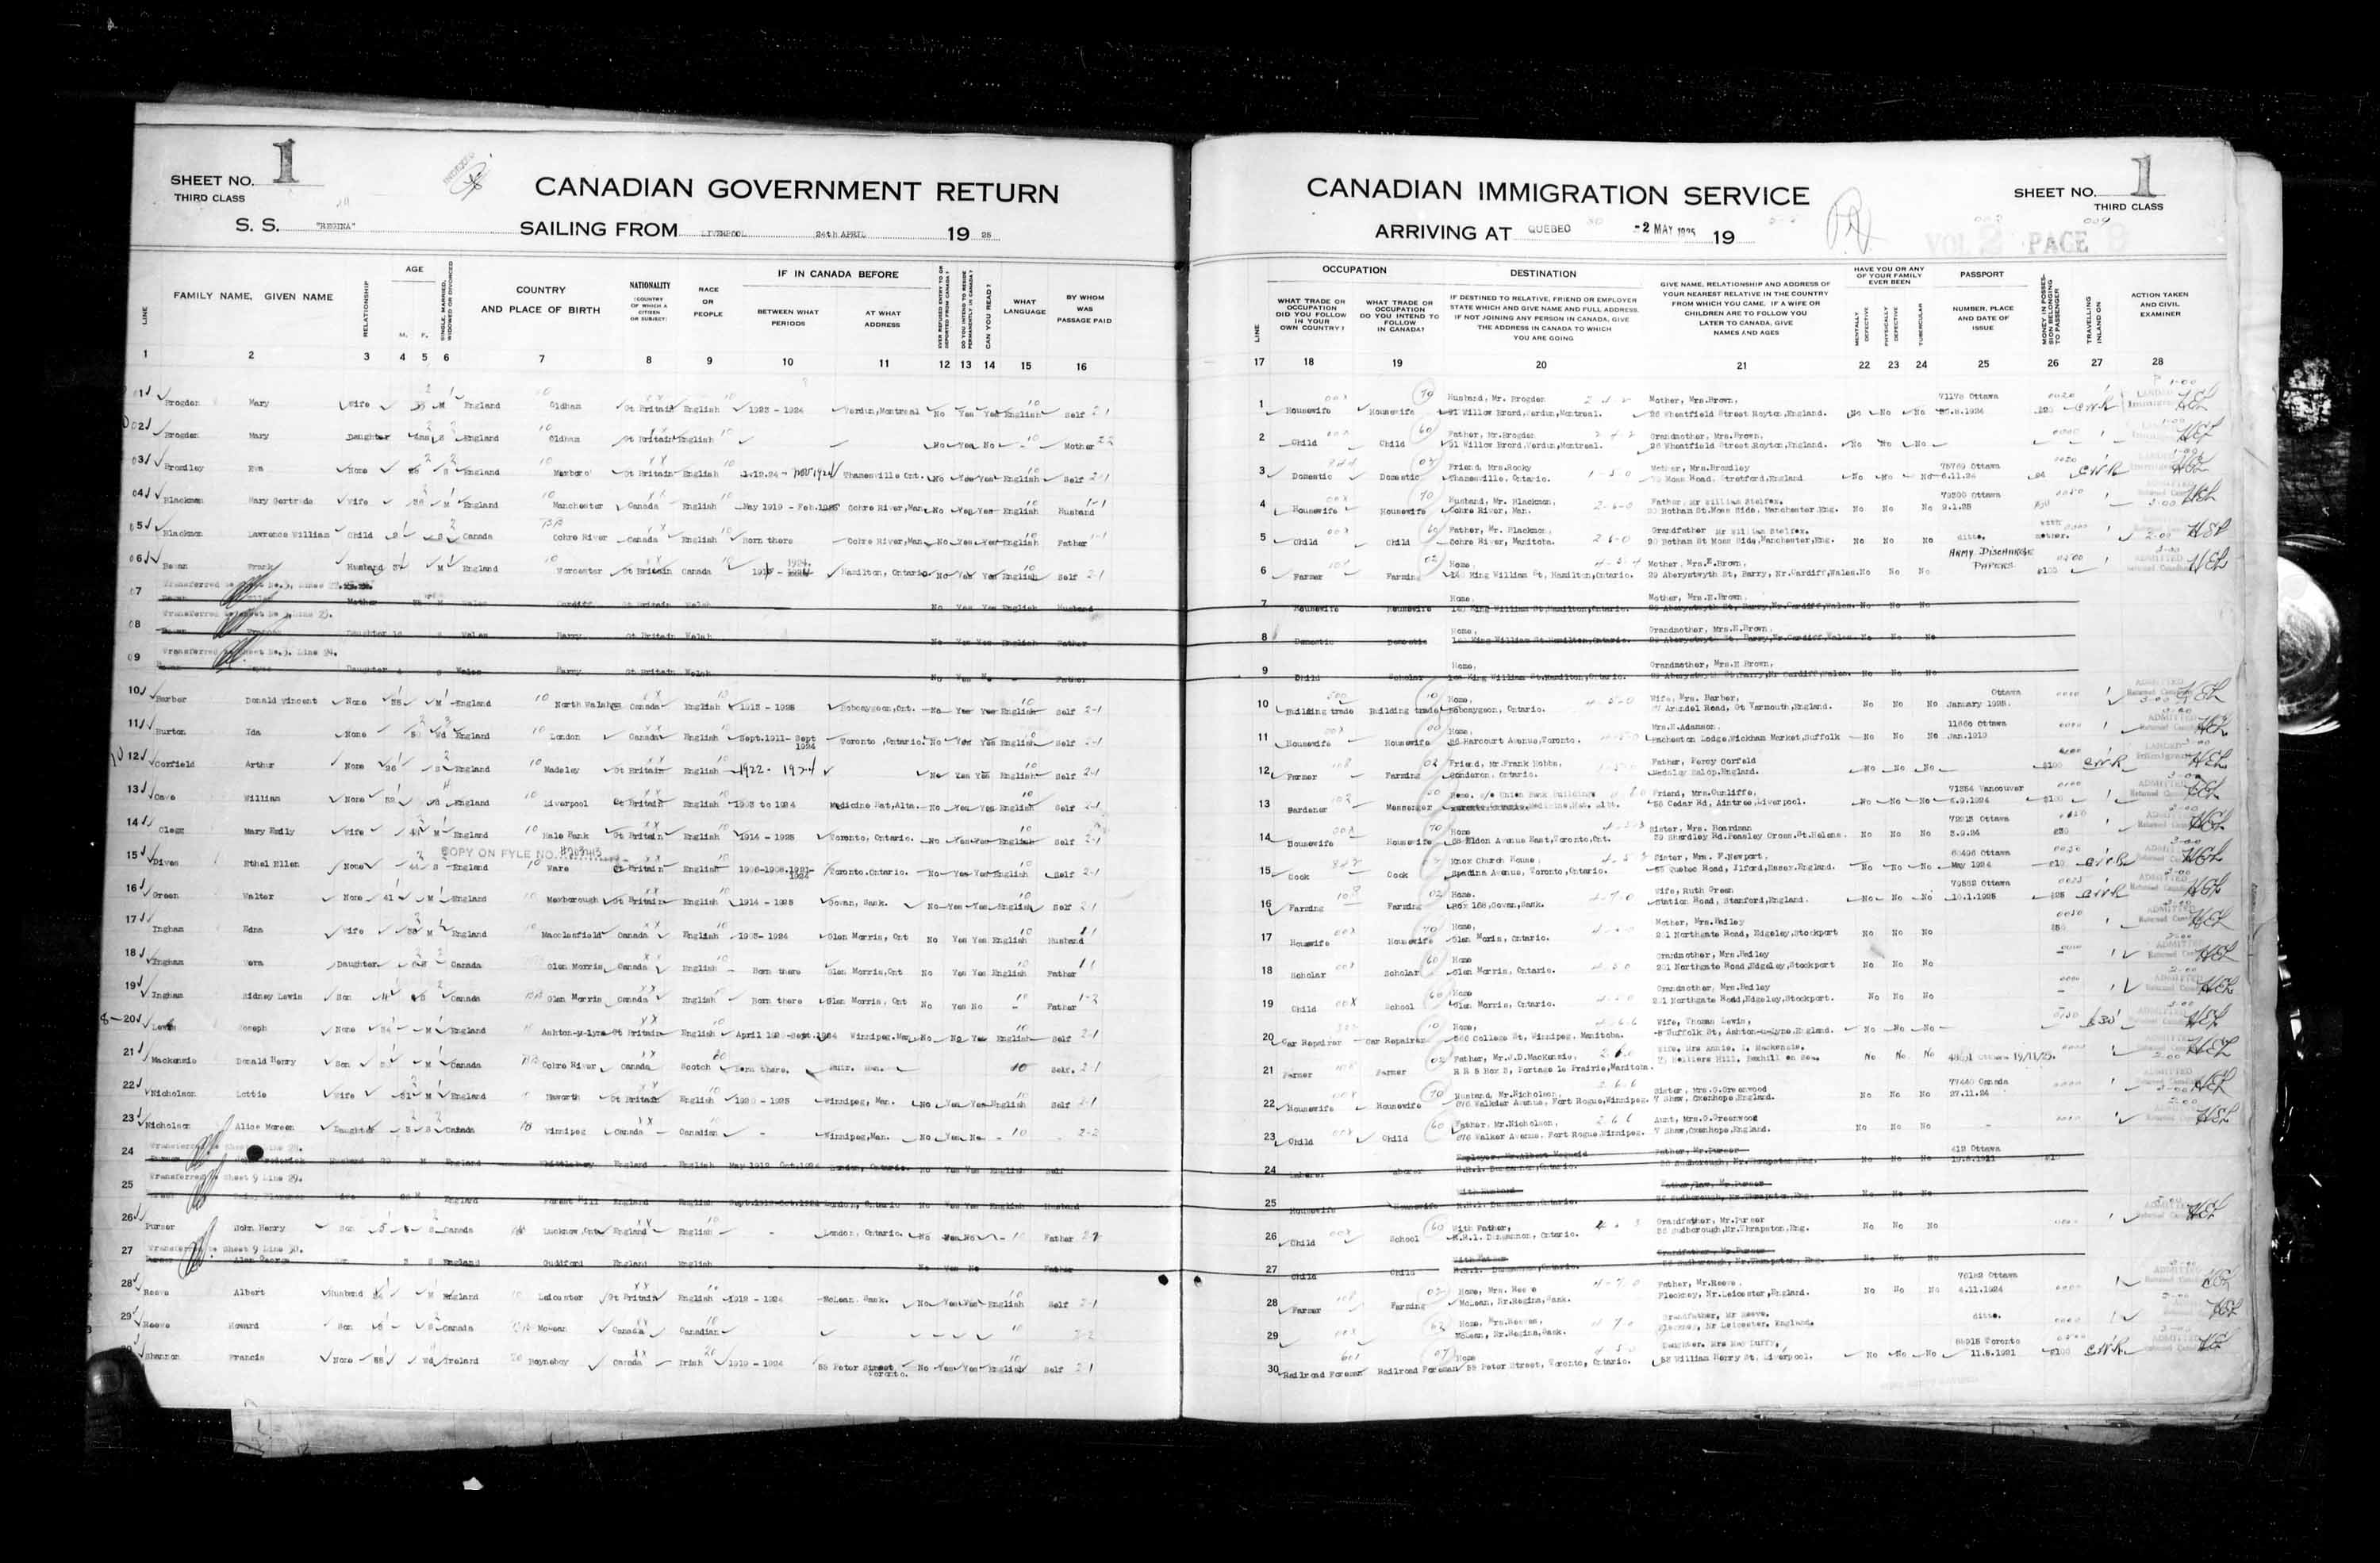 Title: Passenger Lists: Quebec City (1925-1935) - Mikan Number: 134839 - Microform: t-14715